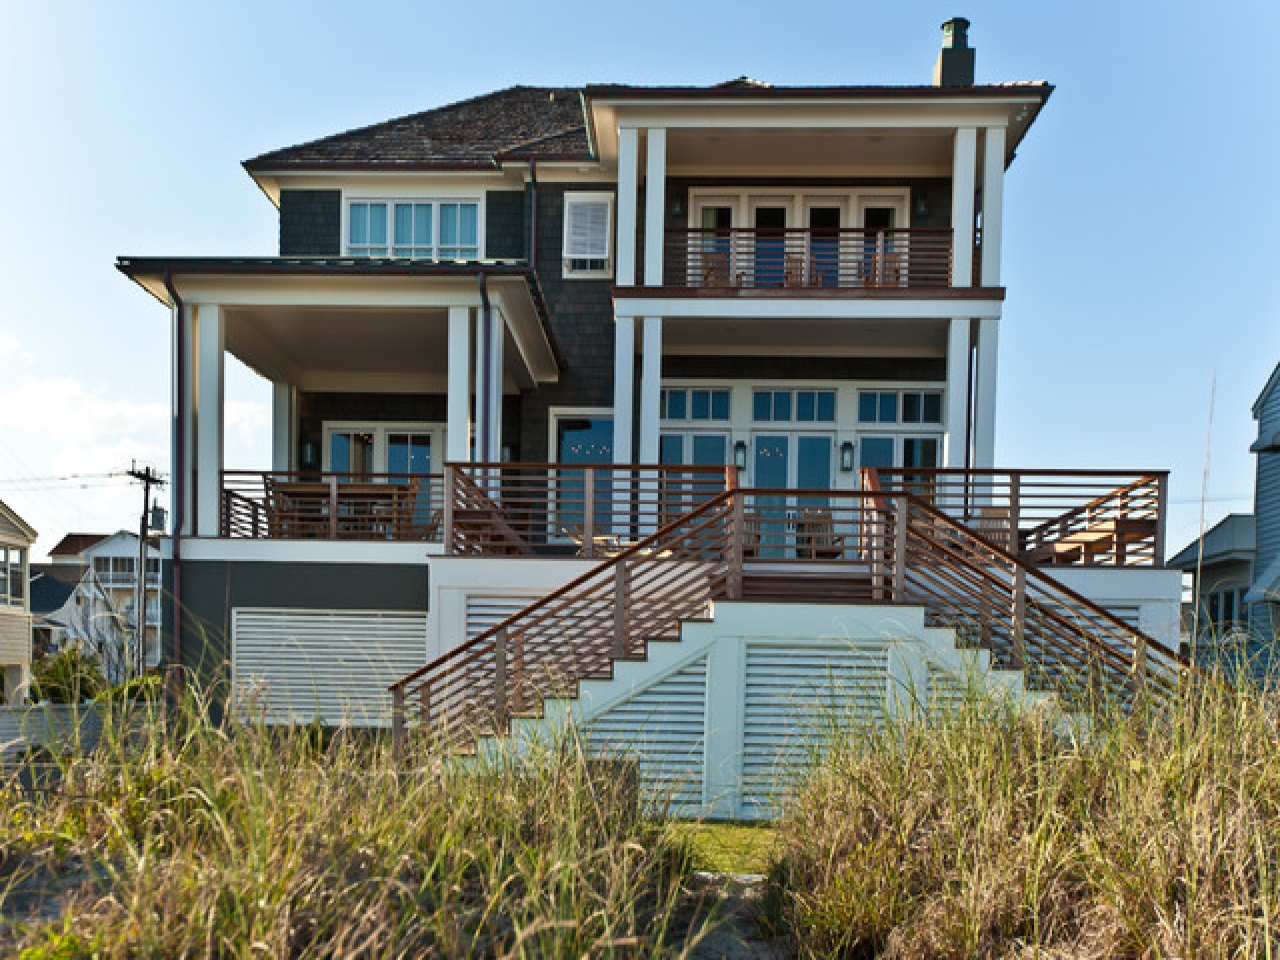 Beach house exterior color schemes beach house exterior - Coastal home exterior color schemes ...